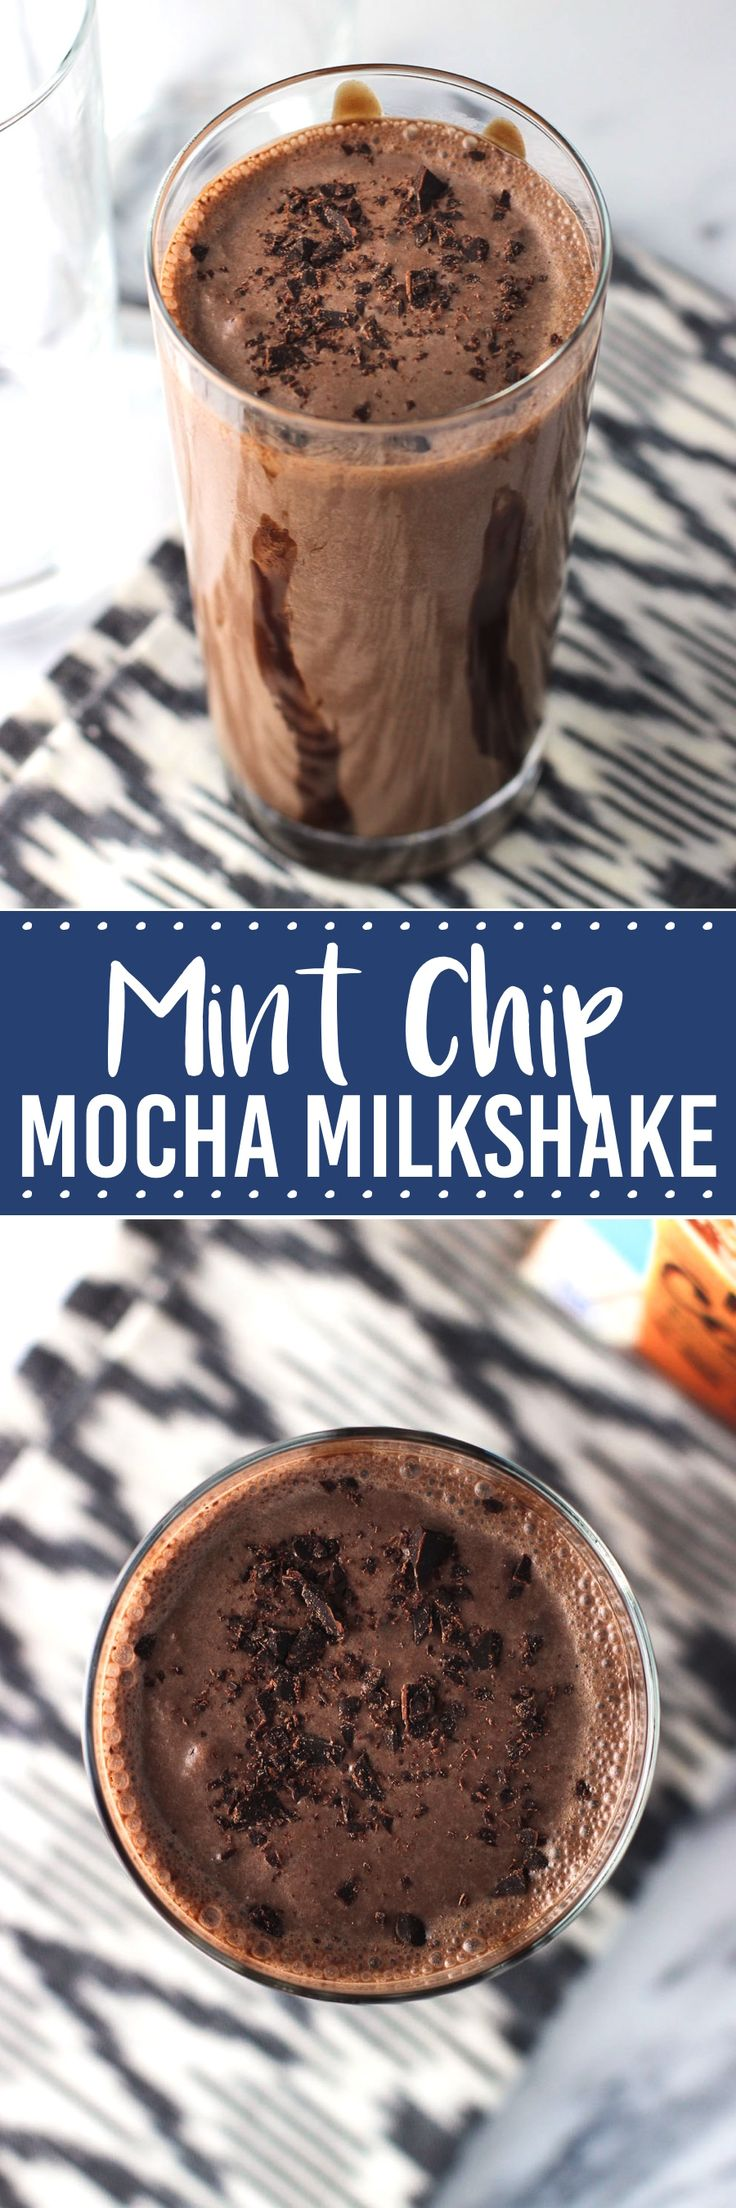 Mint Chip Mocha Milkshake - a delicious, frosty milkshake using iced coffee, chocolate ice cream, and more! ad